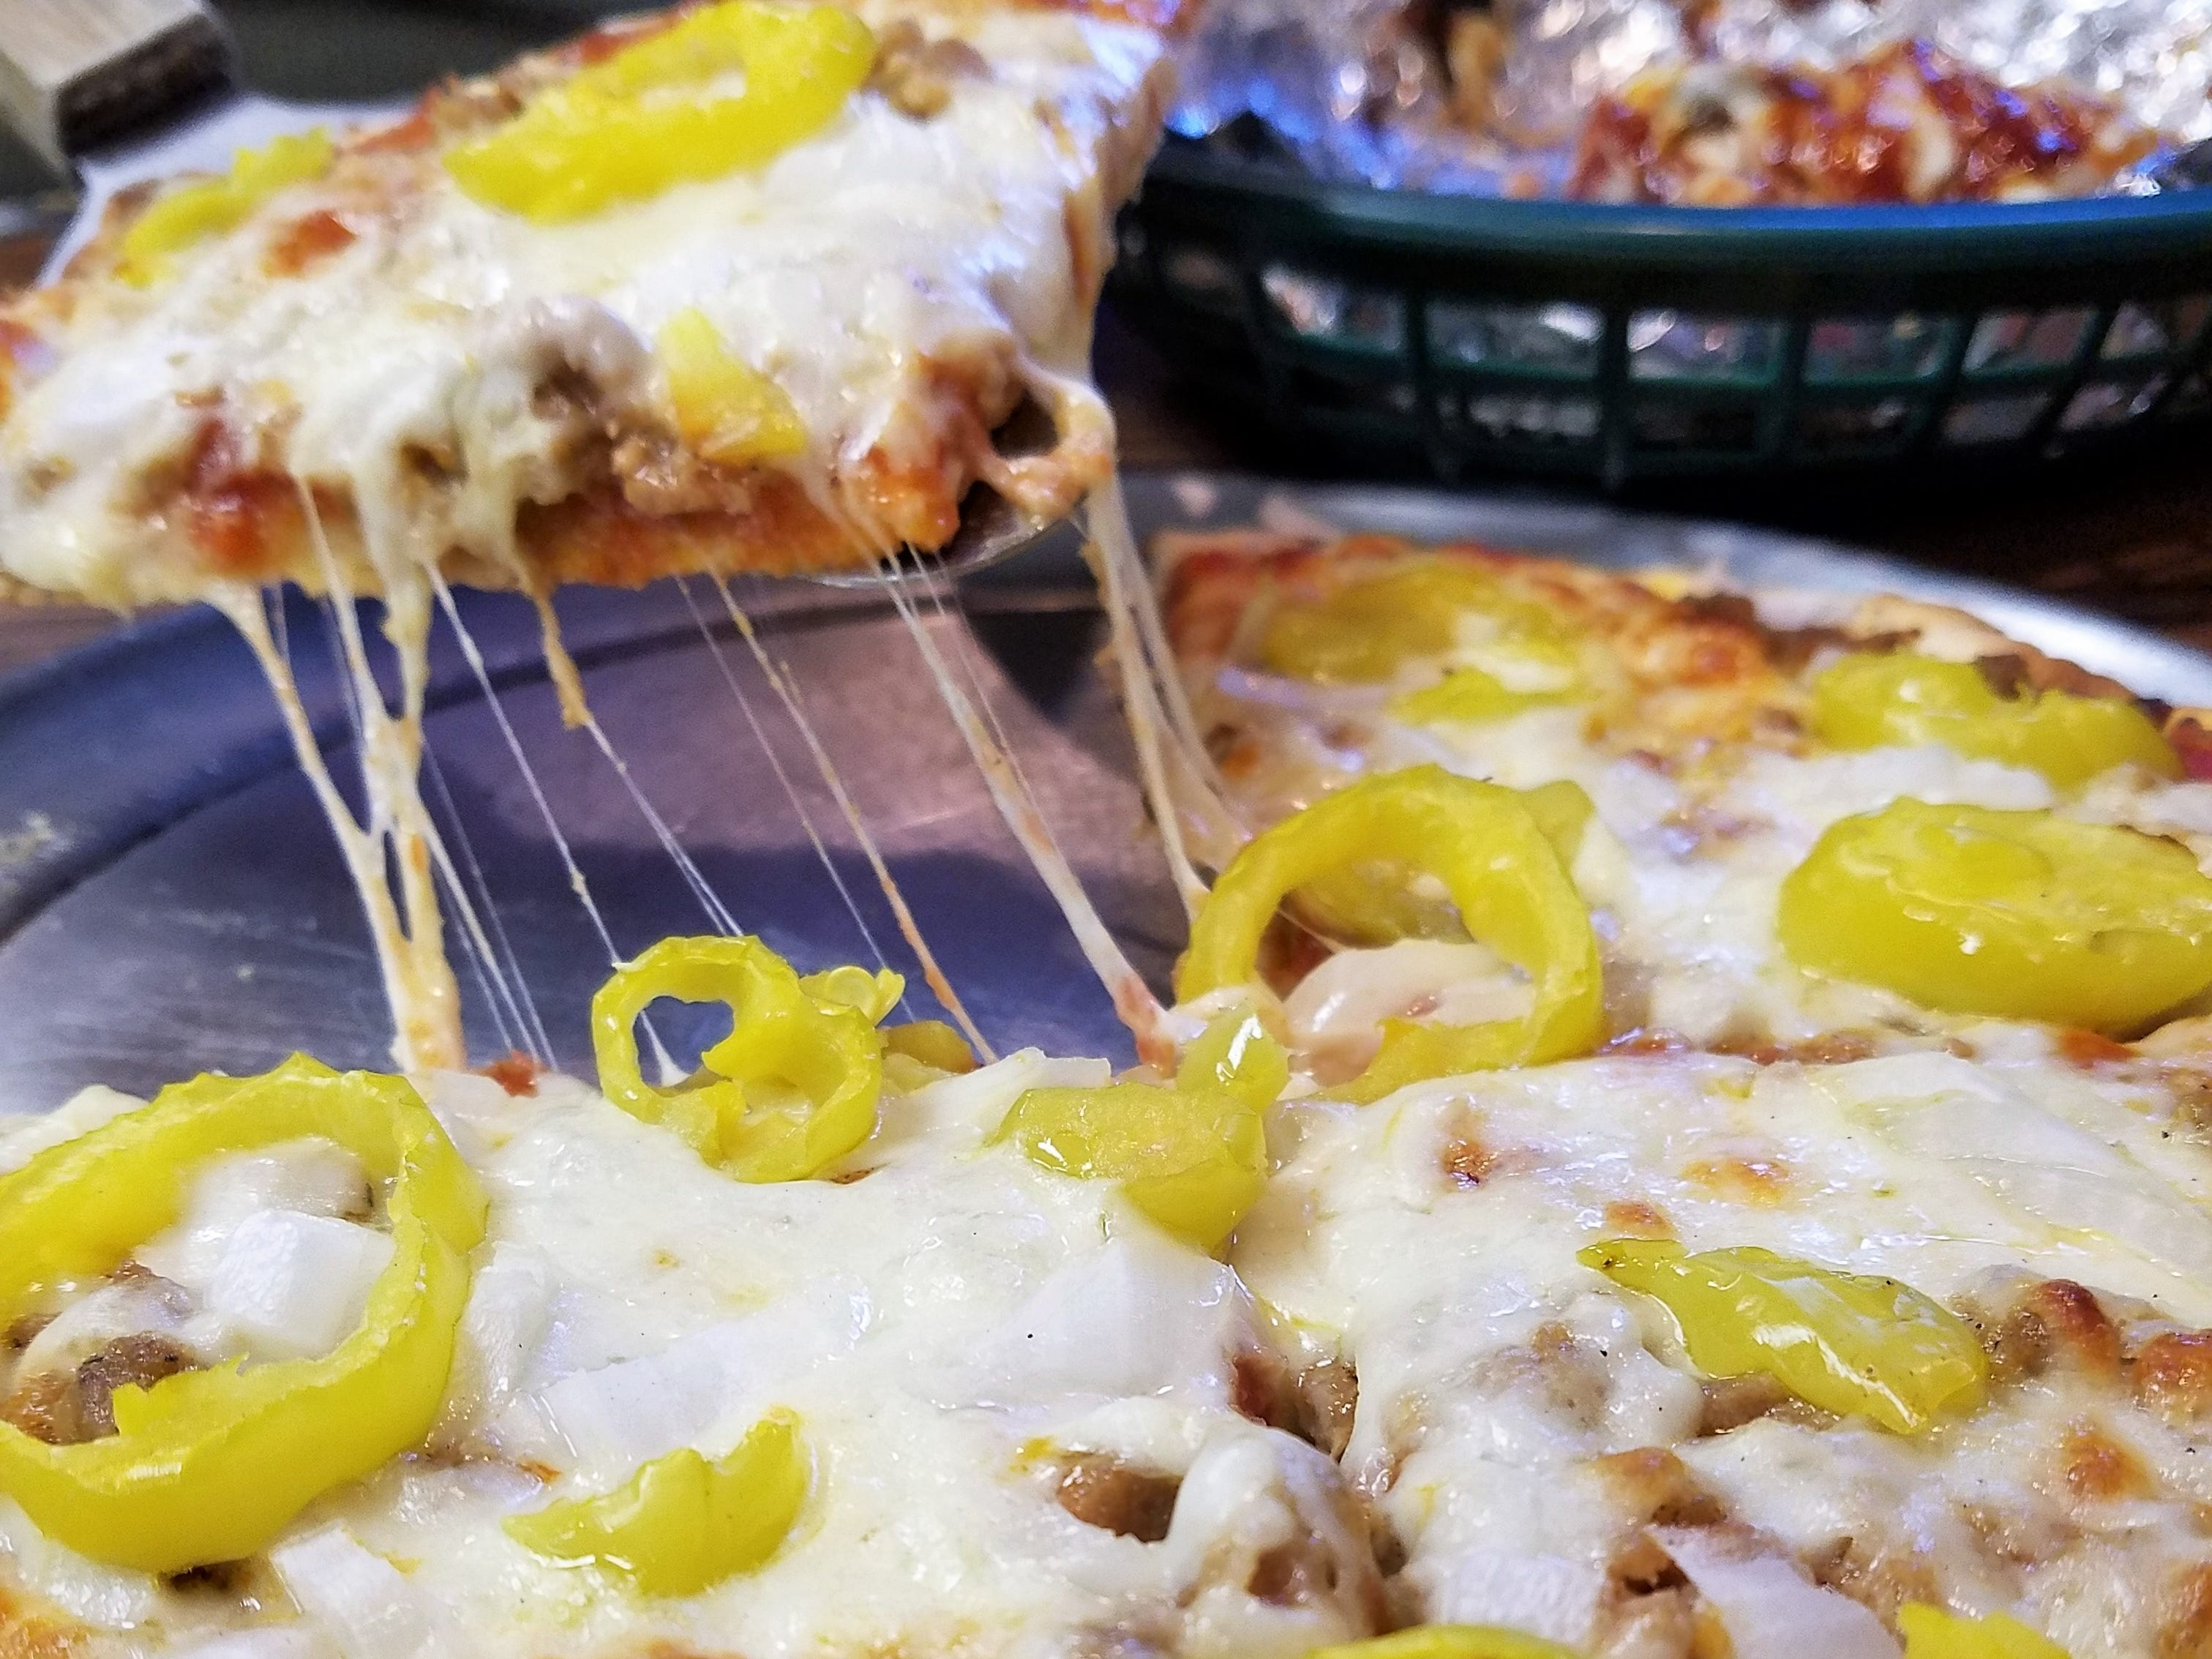 Pizza from the Lobo Lounge is made with all fresh meat on house-made crust.